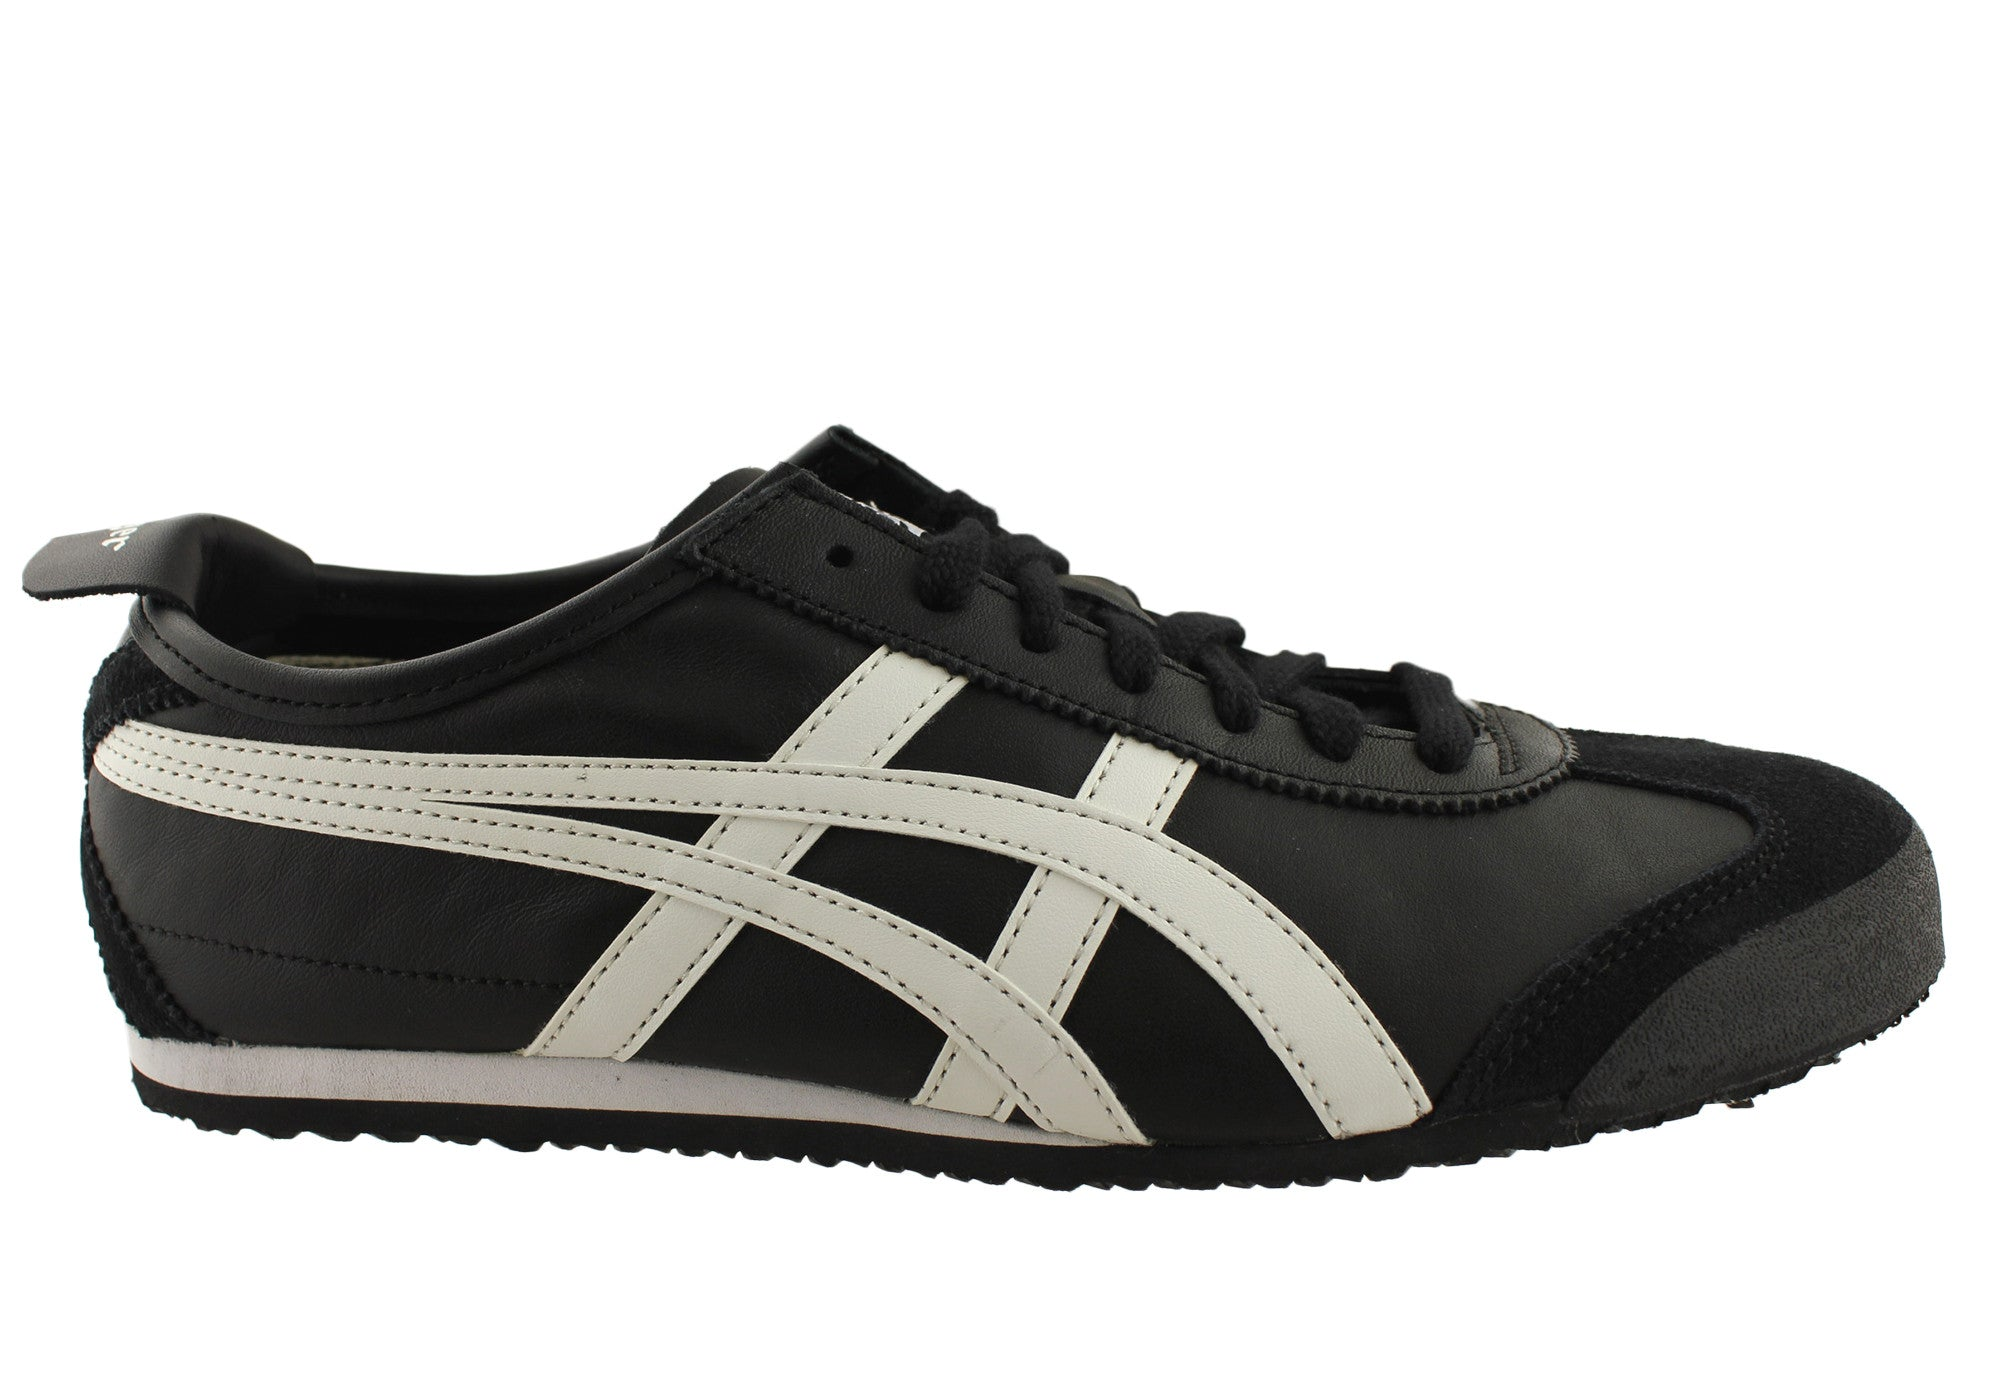 on sale c25a8 83c11 Asics Onitsuka Tiger Mexico 66 Mens Leather Lace Up Casual Shoes | Brand  House Direct